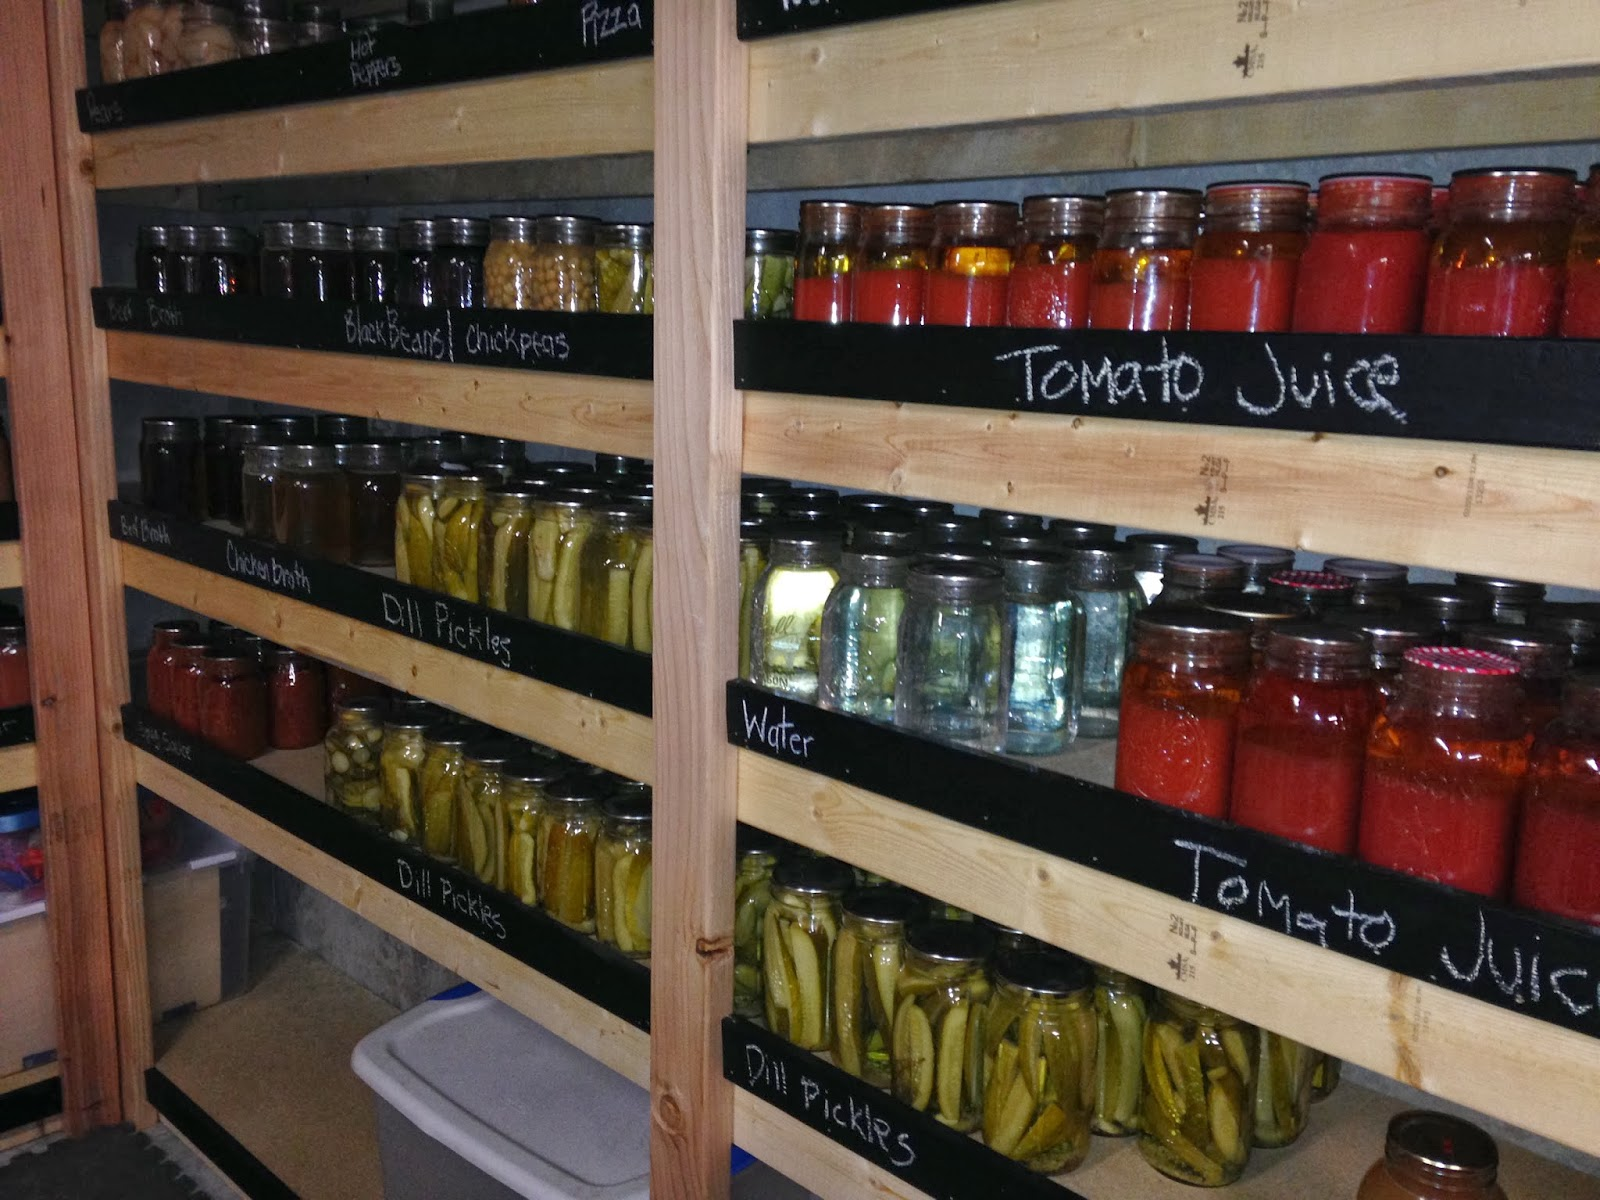 Recipes We Love Canning Pantry With Chalkboard Ledge To